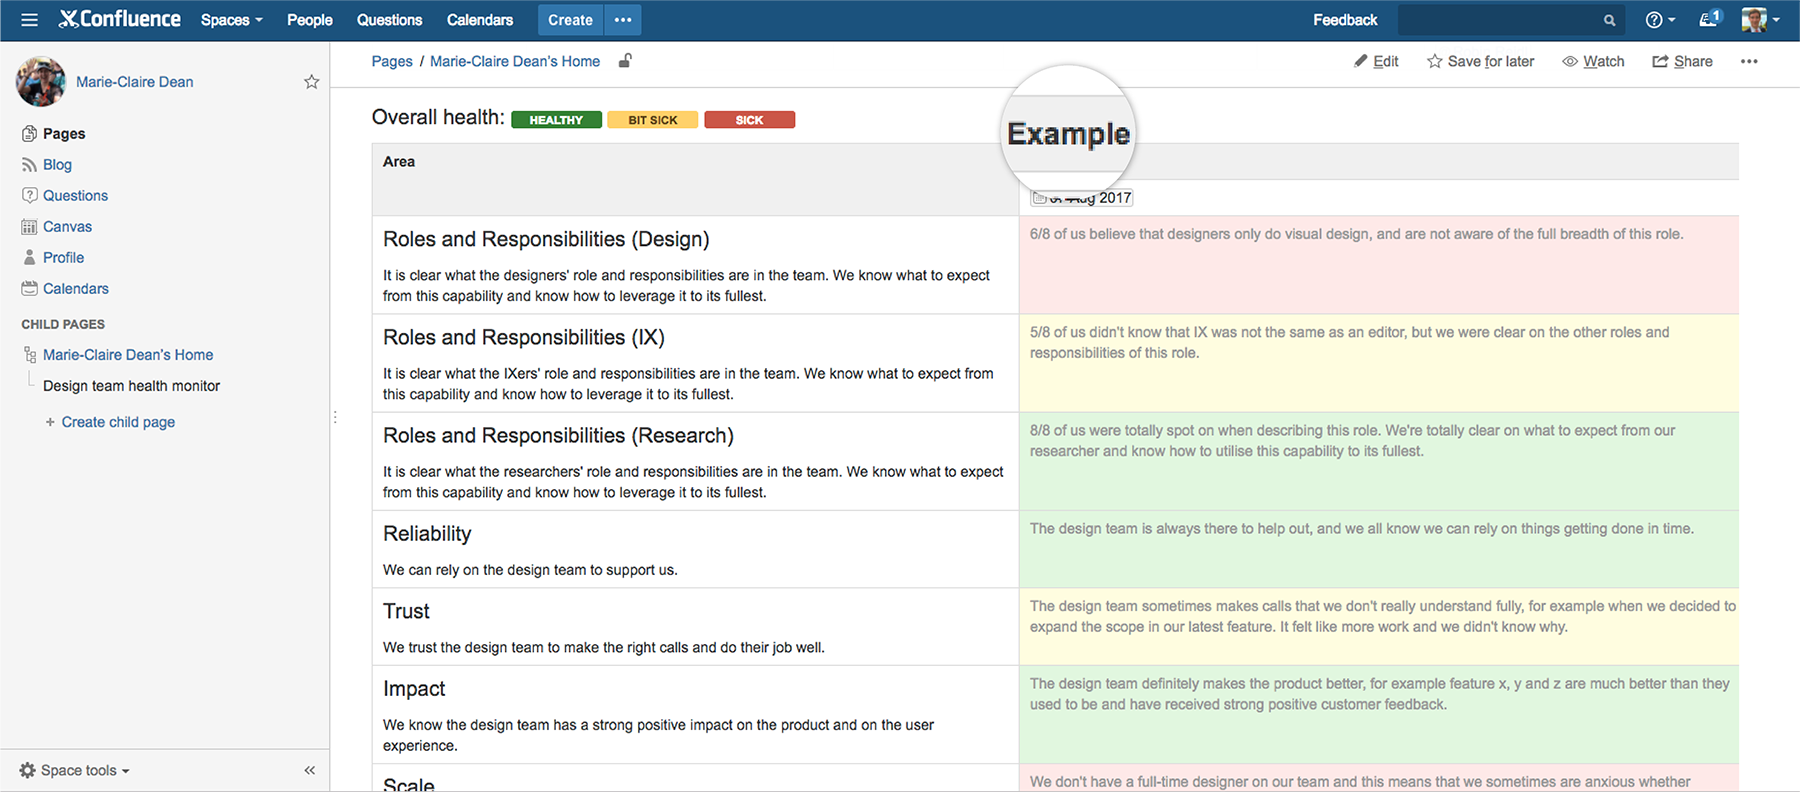 Best Confluence pages: reflect on and track your team's health